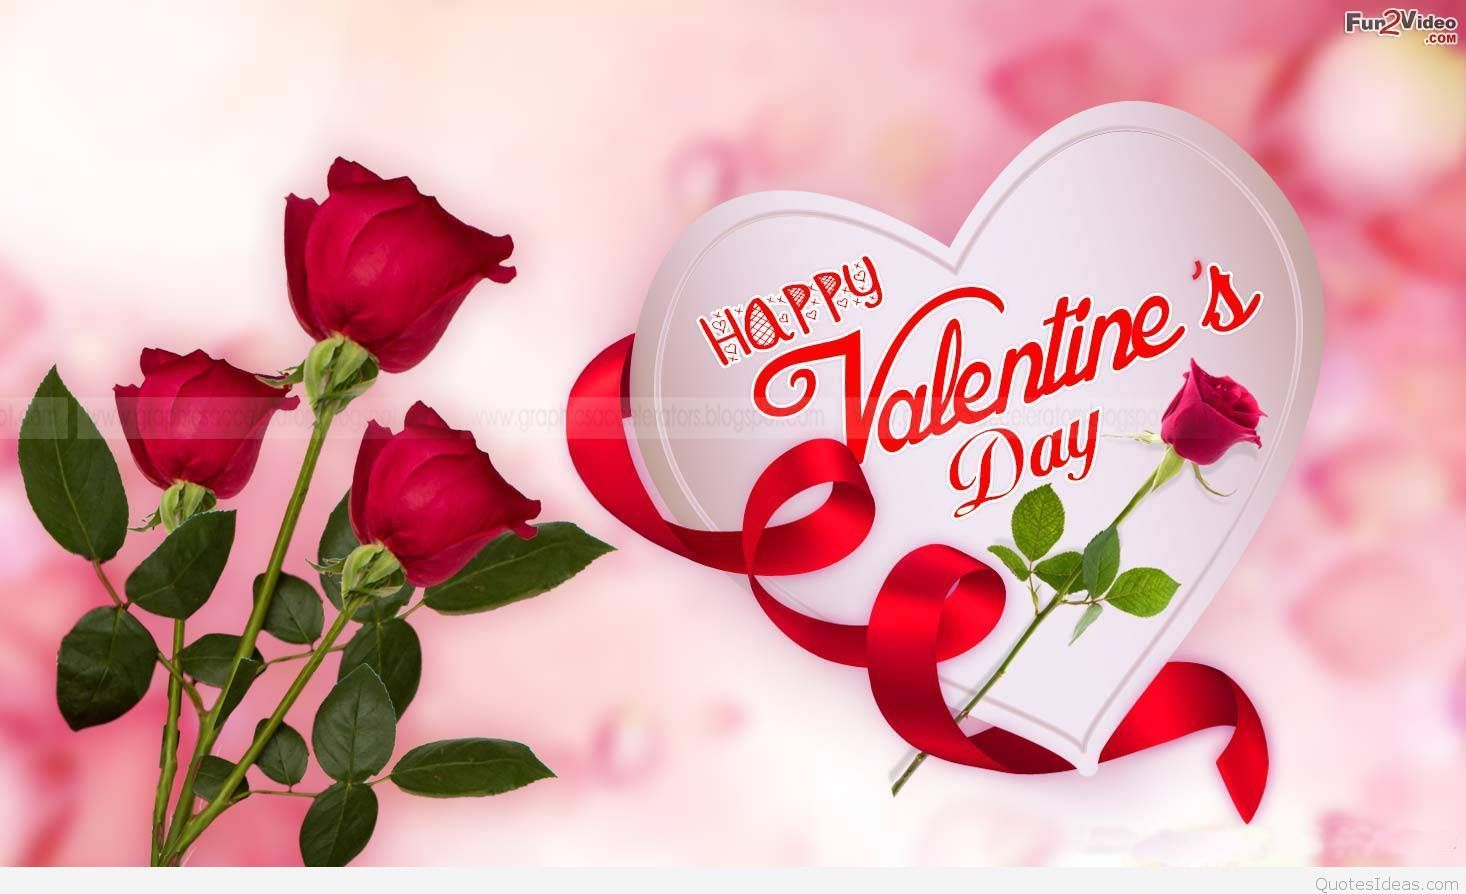 1466x894 stocks at Happy Valentines Day Wallpaper group